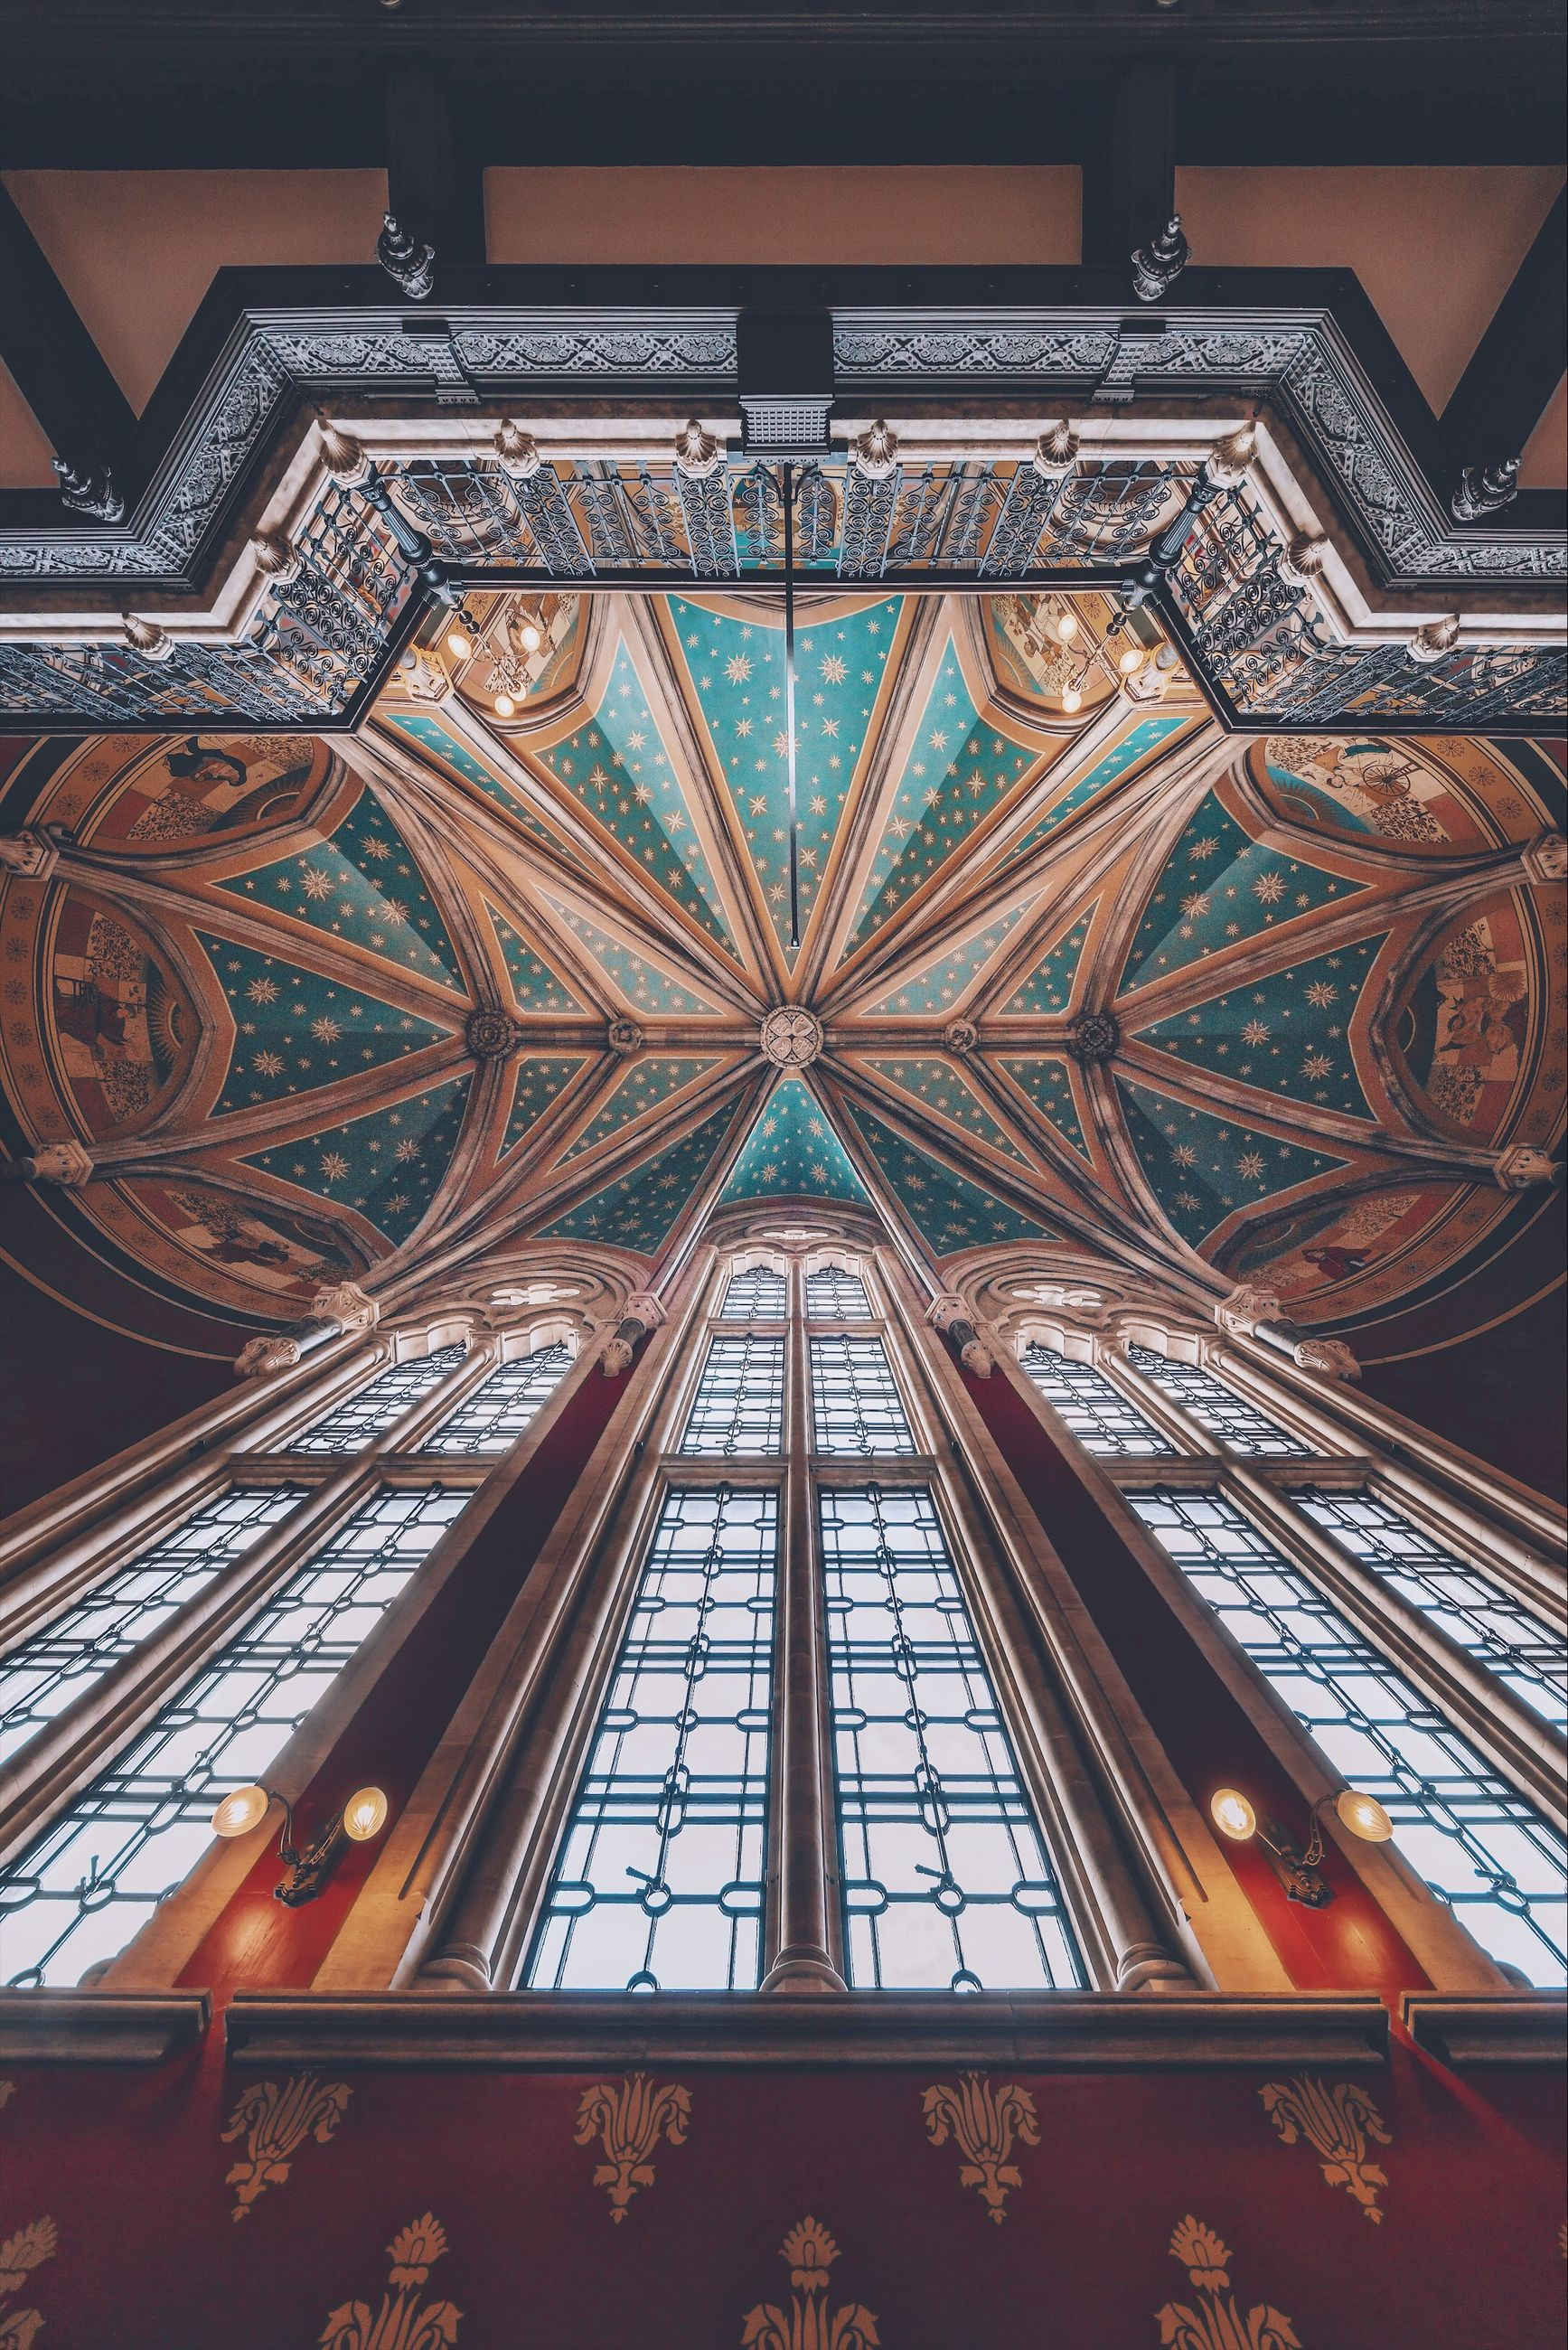 built structure, architecture, low angle view, indoors, no people, building, religion, ceiling, place of worship, glass - material, belief, spirituality, pattern, travel destinations, design, stained glass, glass, directly below, architecture and art, ornate, luxury